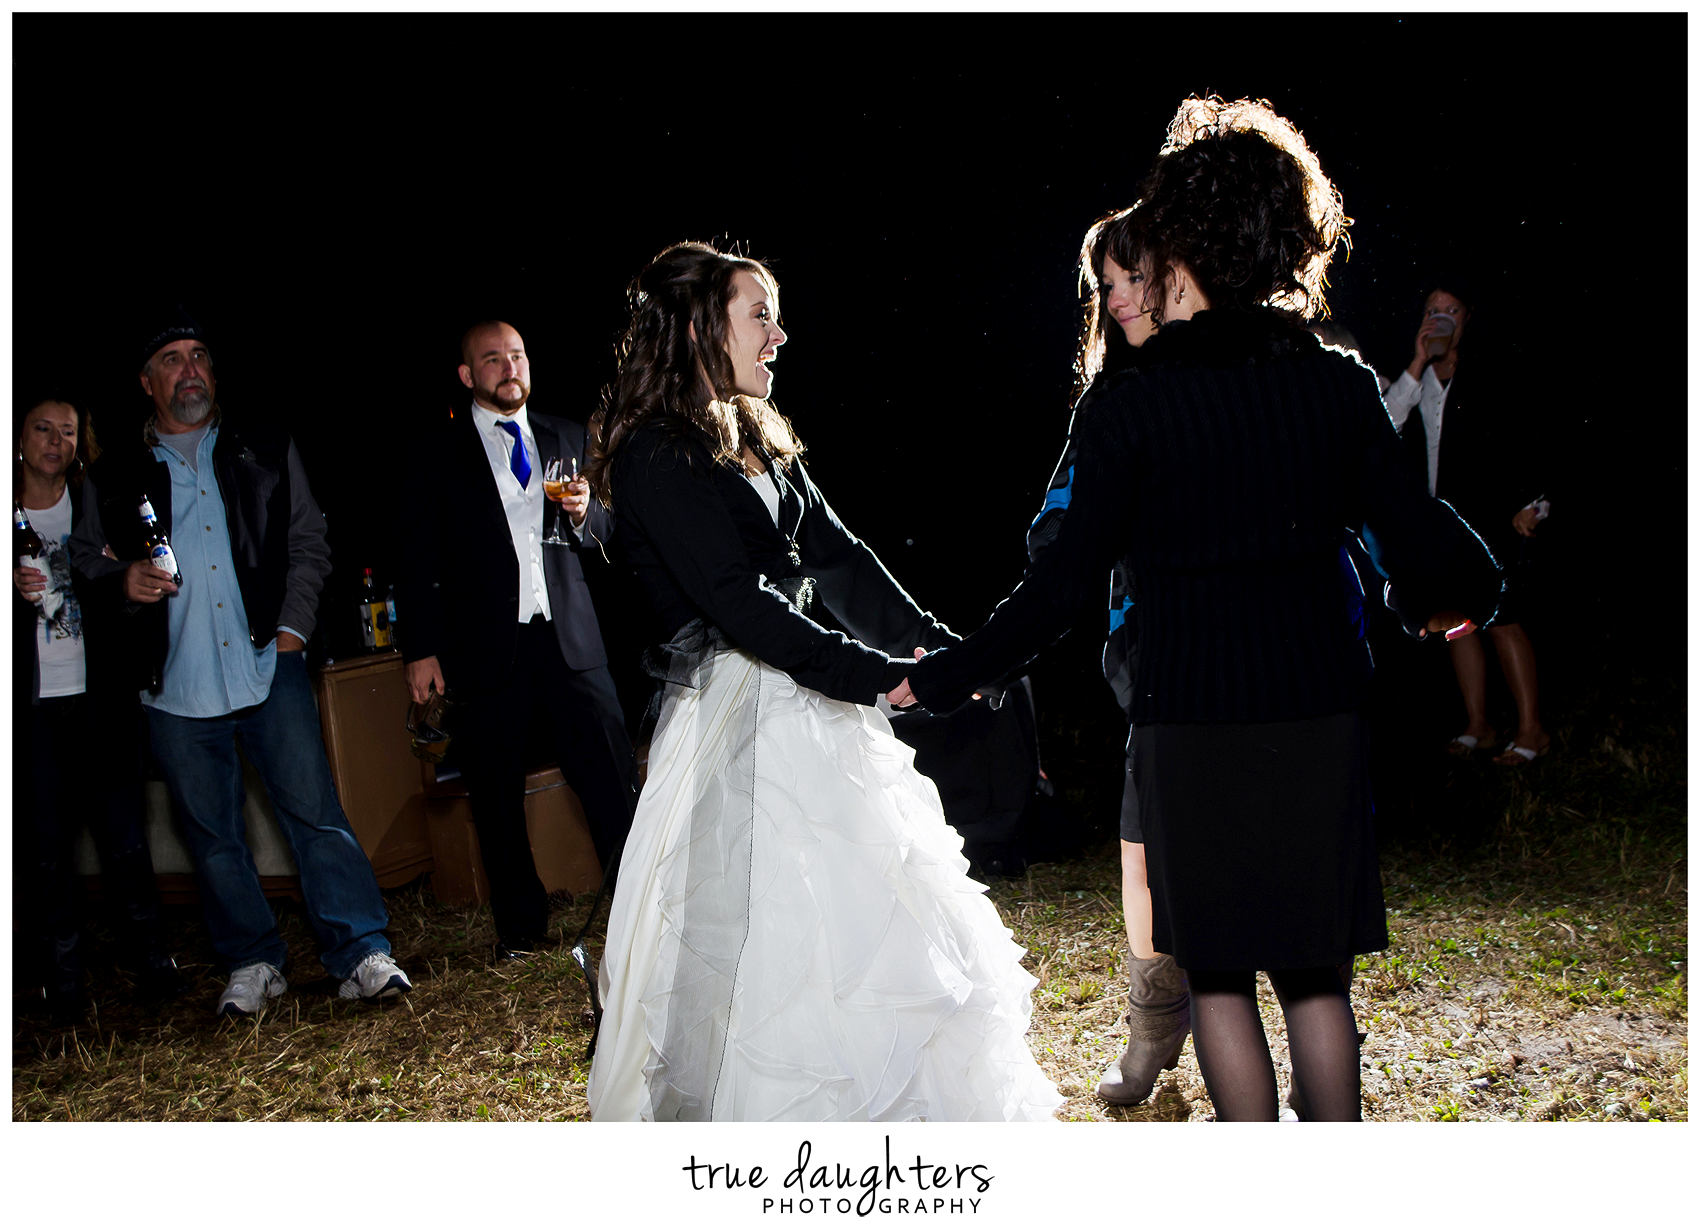 True_Daughters_Photography_Campitelli_Wedding-38.png